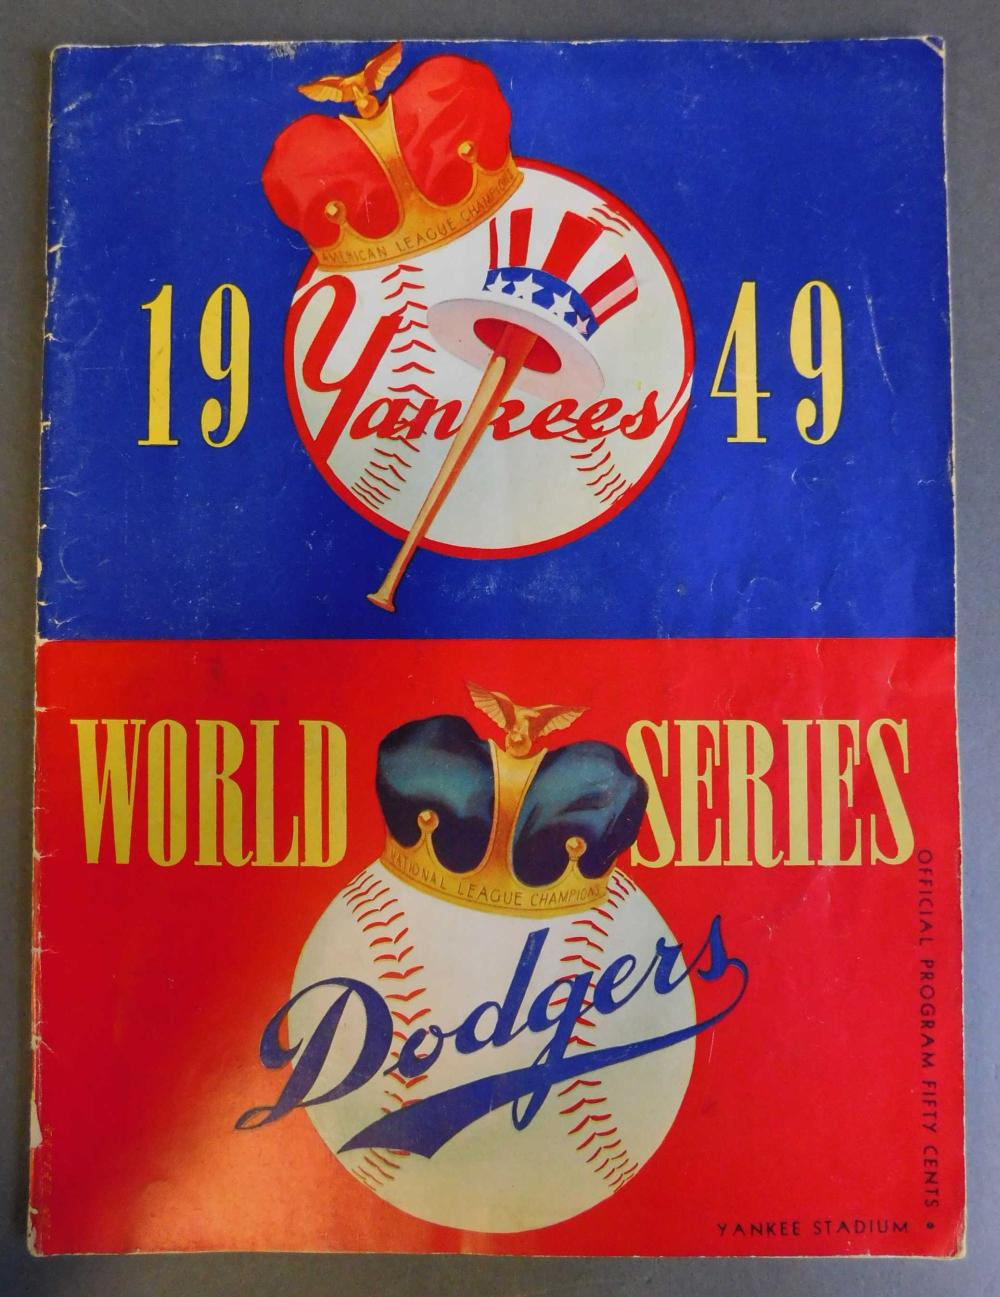 World Series signed by 20 players incl Yogi Berra.